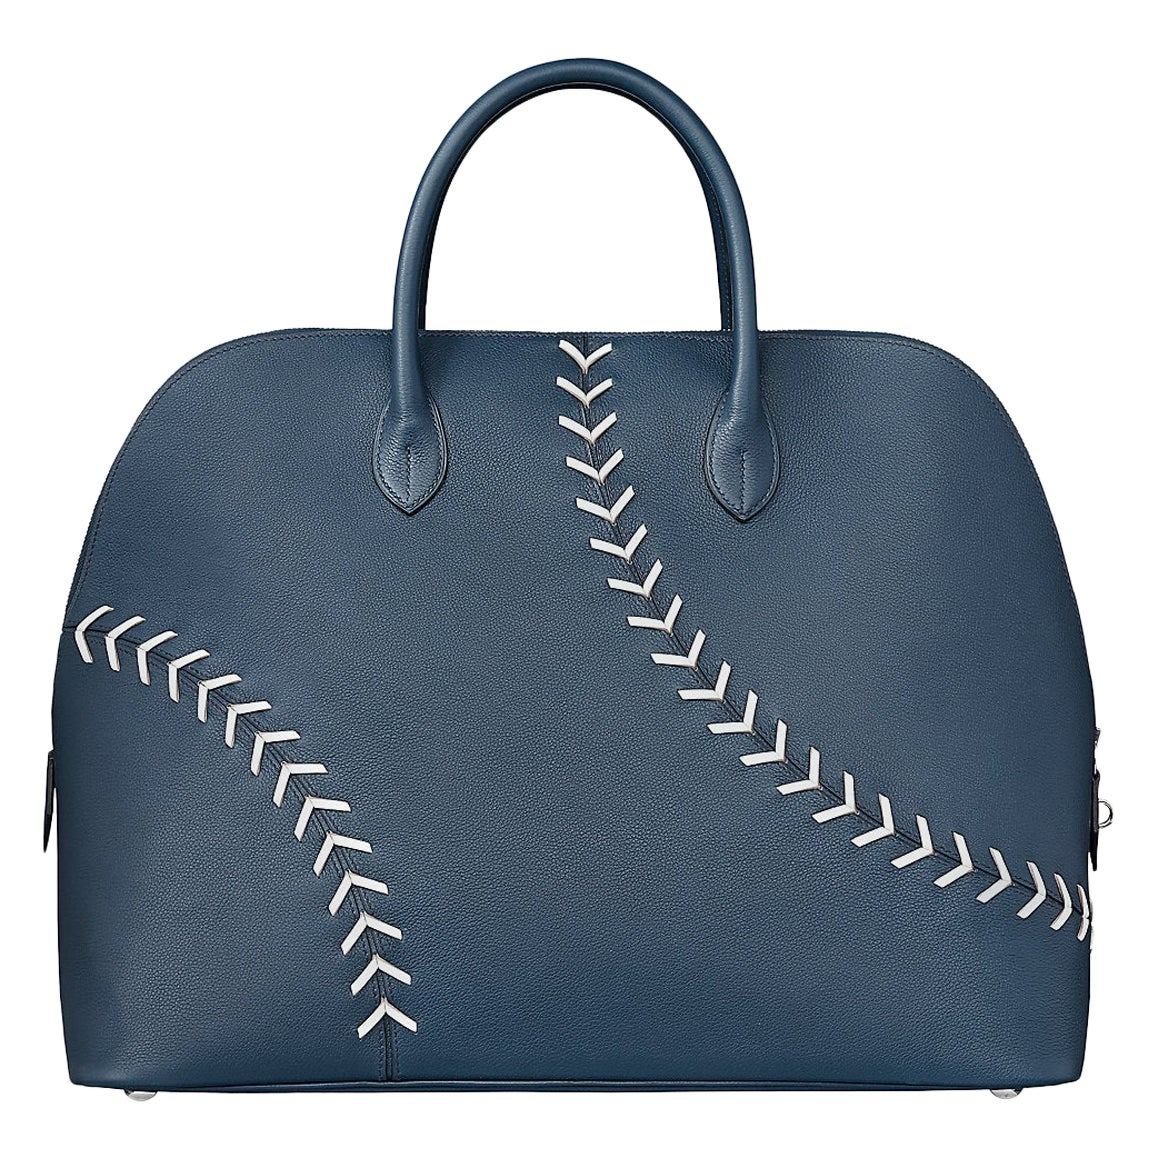 Hermes NEW Blue White Leather Stitch Top Handle Satchel Carryall Travel Tote Bag